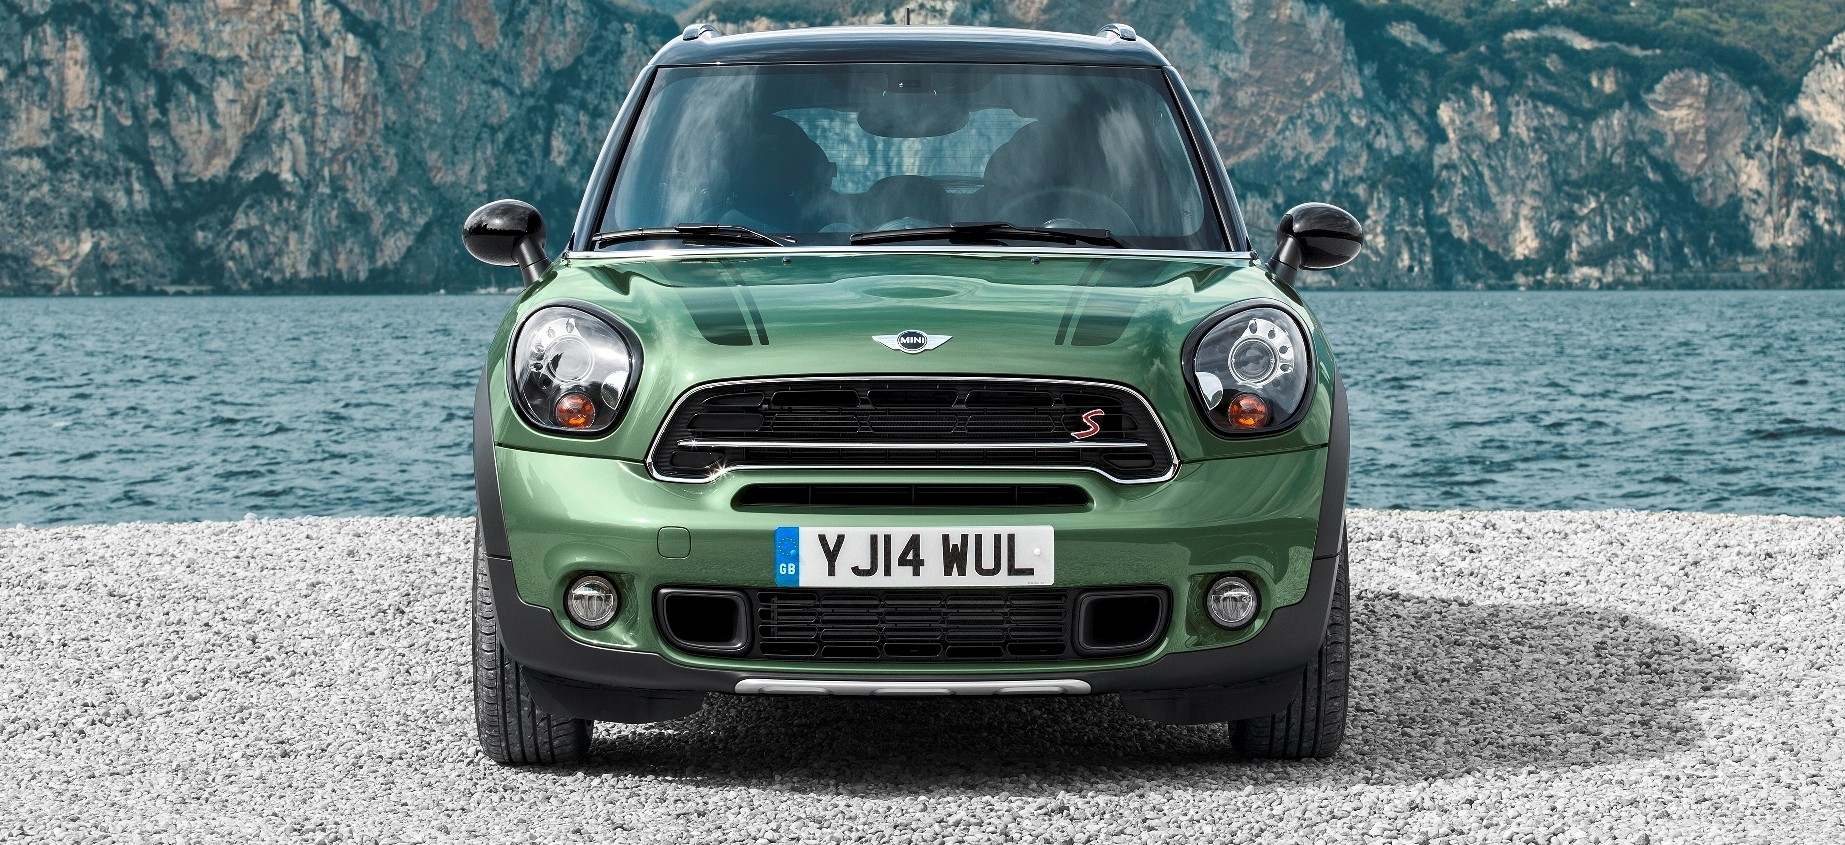 2015 mini countryman debuts dark trimmed style and led foglamp rings. Black Bedroom Furniture Sets. Home Design Ideas